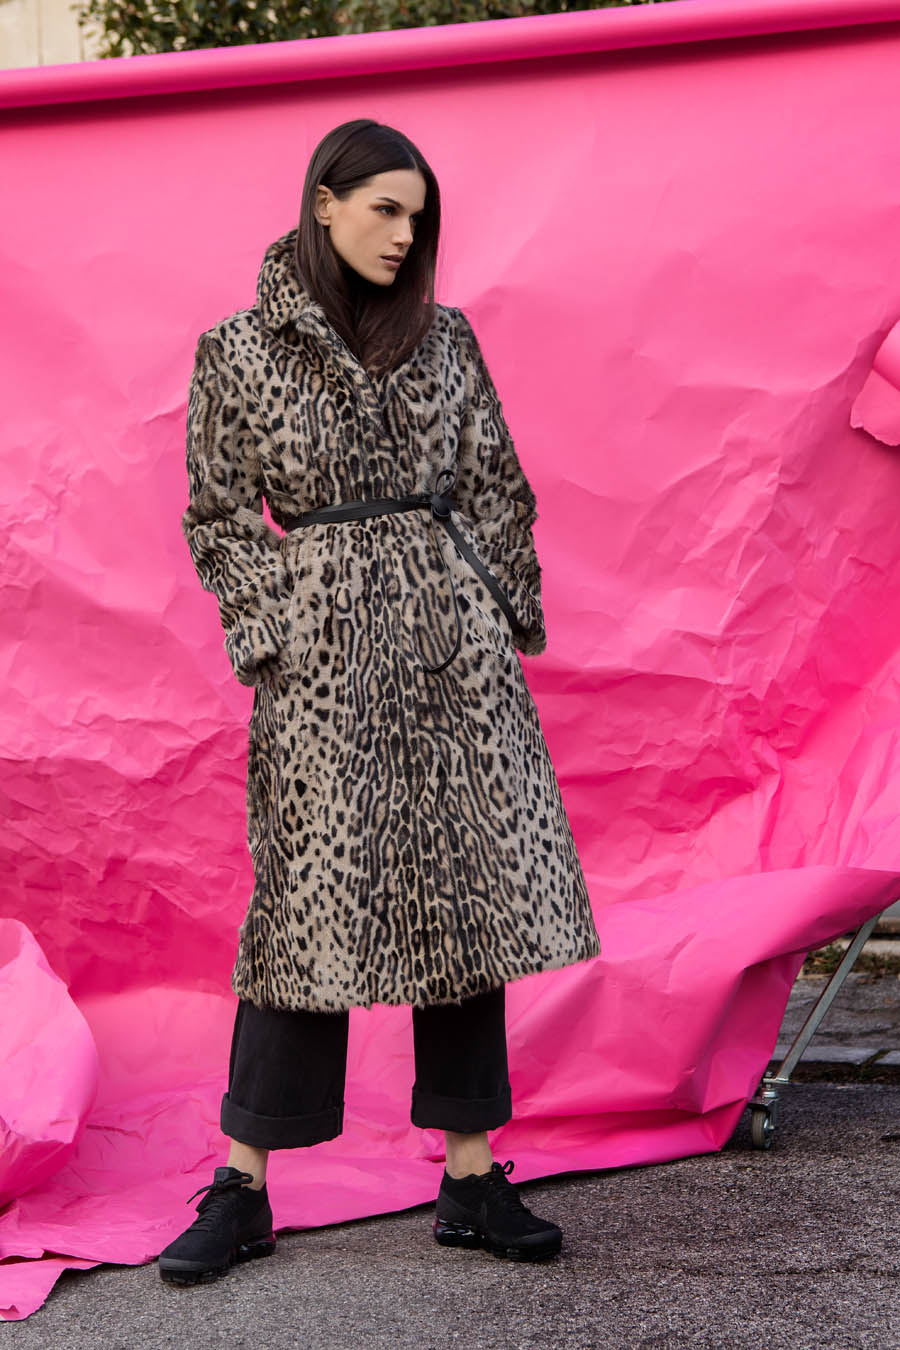 29 P1907K 11 01 giovi pelliccia fur leopard - Fall Winter 2019-20